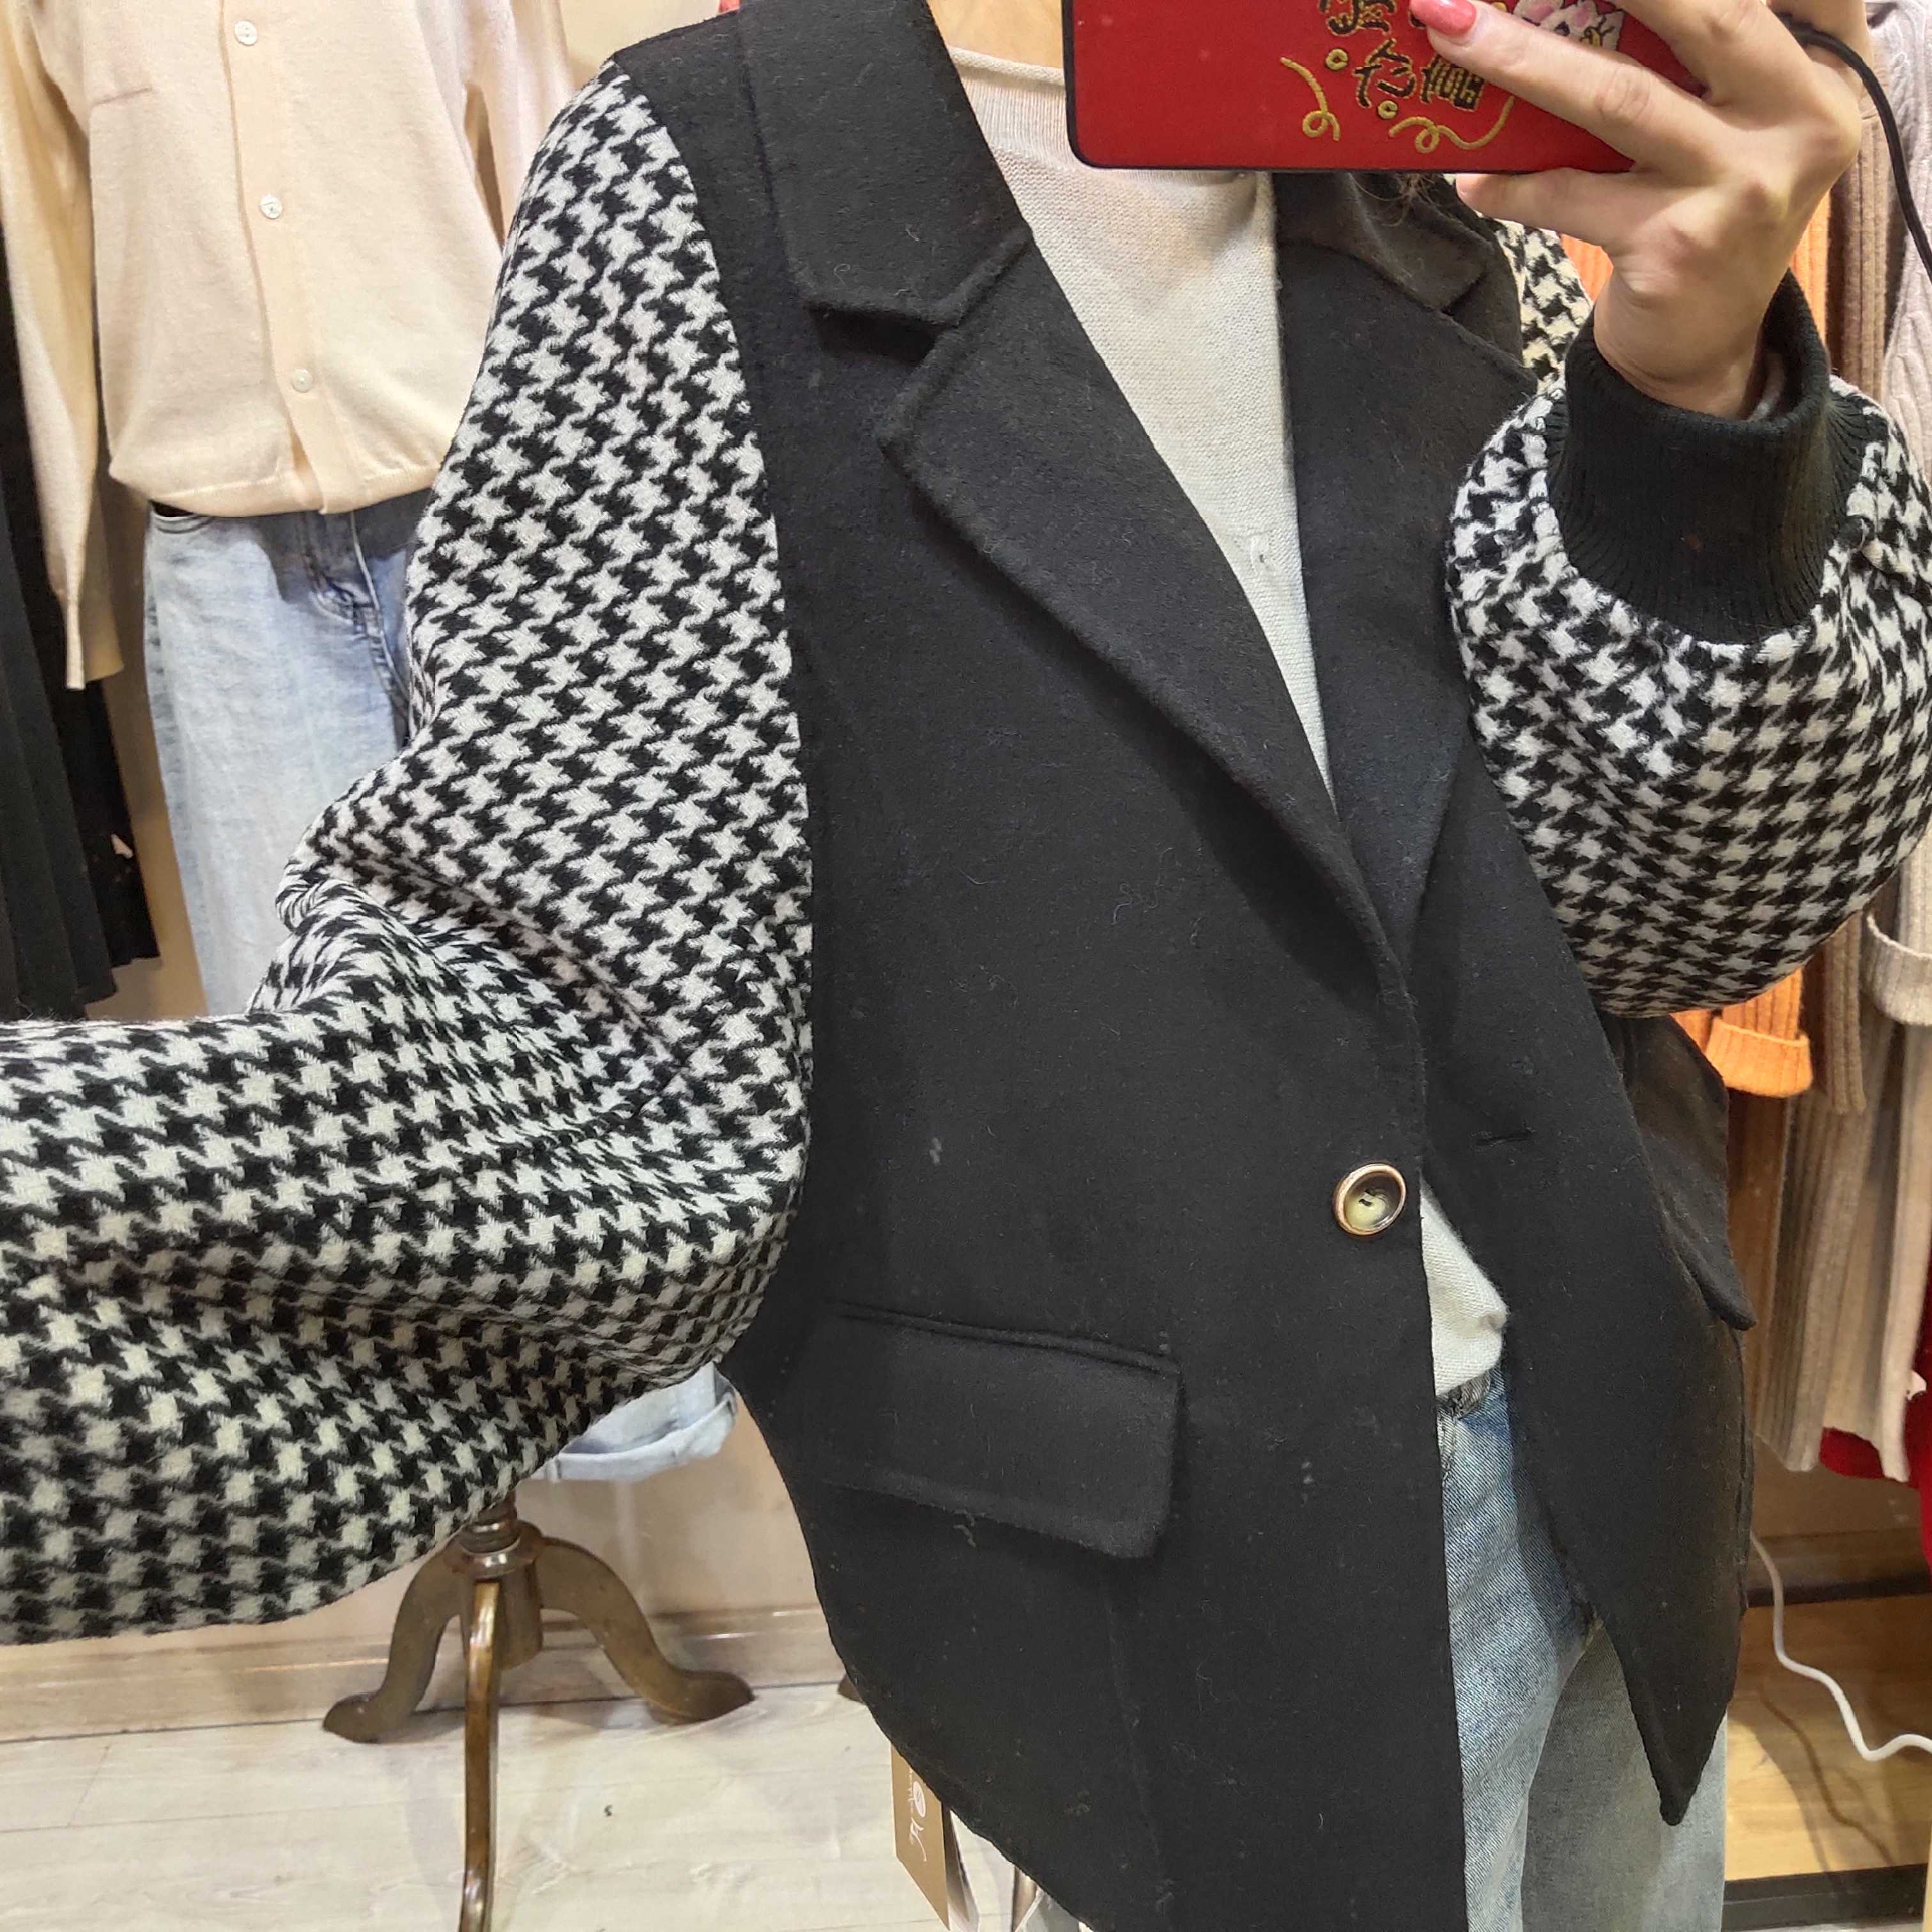 Europe station autumn / winter 2019 new European style suit collar double face cashmere coat women short small fragrant check coat